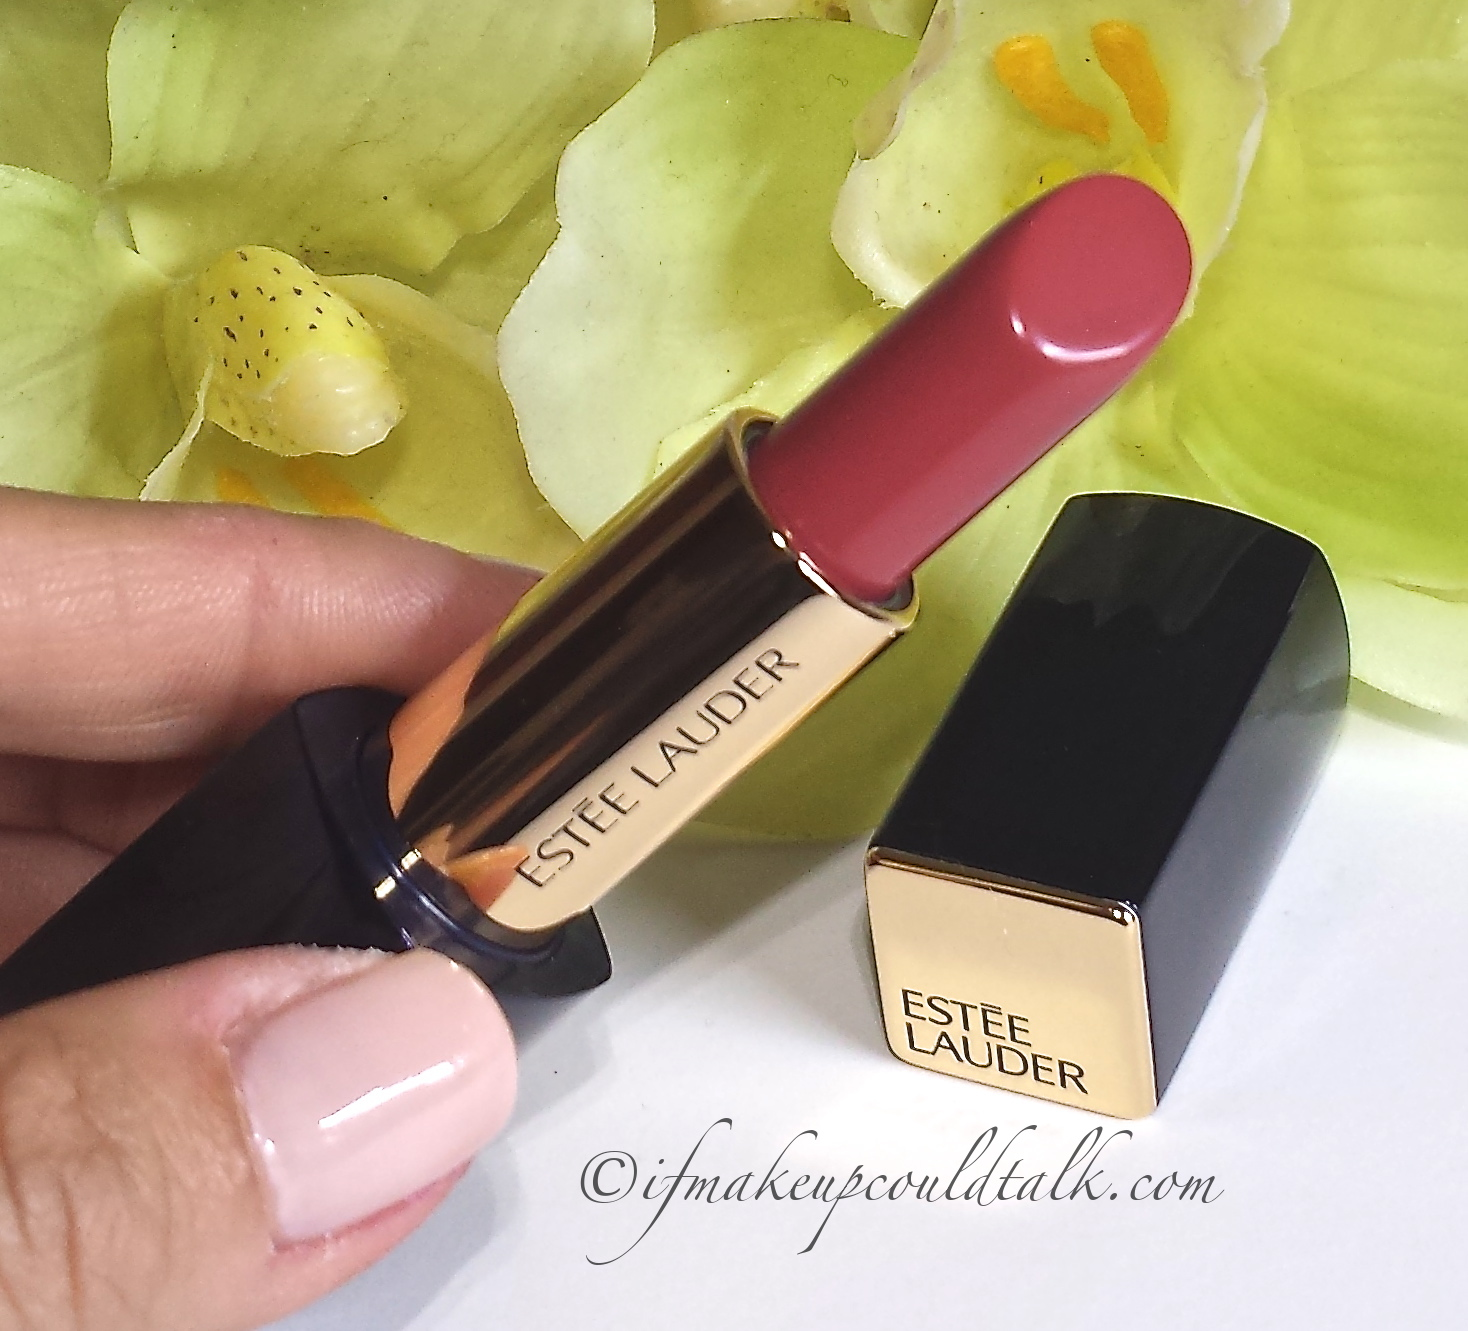 Estee Lauder Rebellious Rose 420 Pure Color Envy Lipstick Review And Swatches